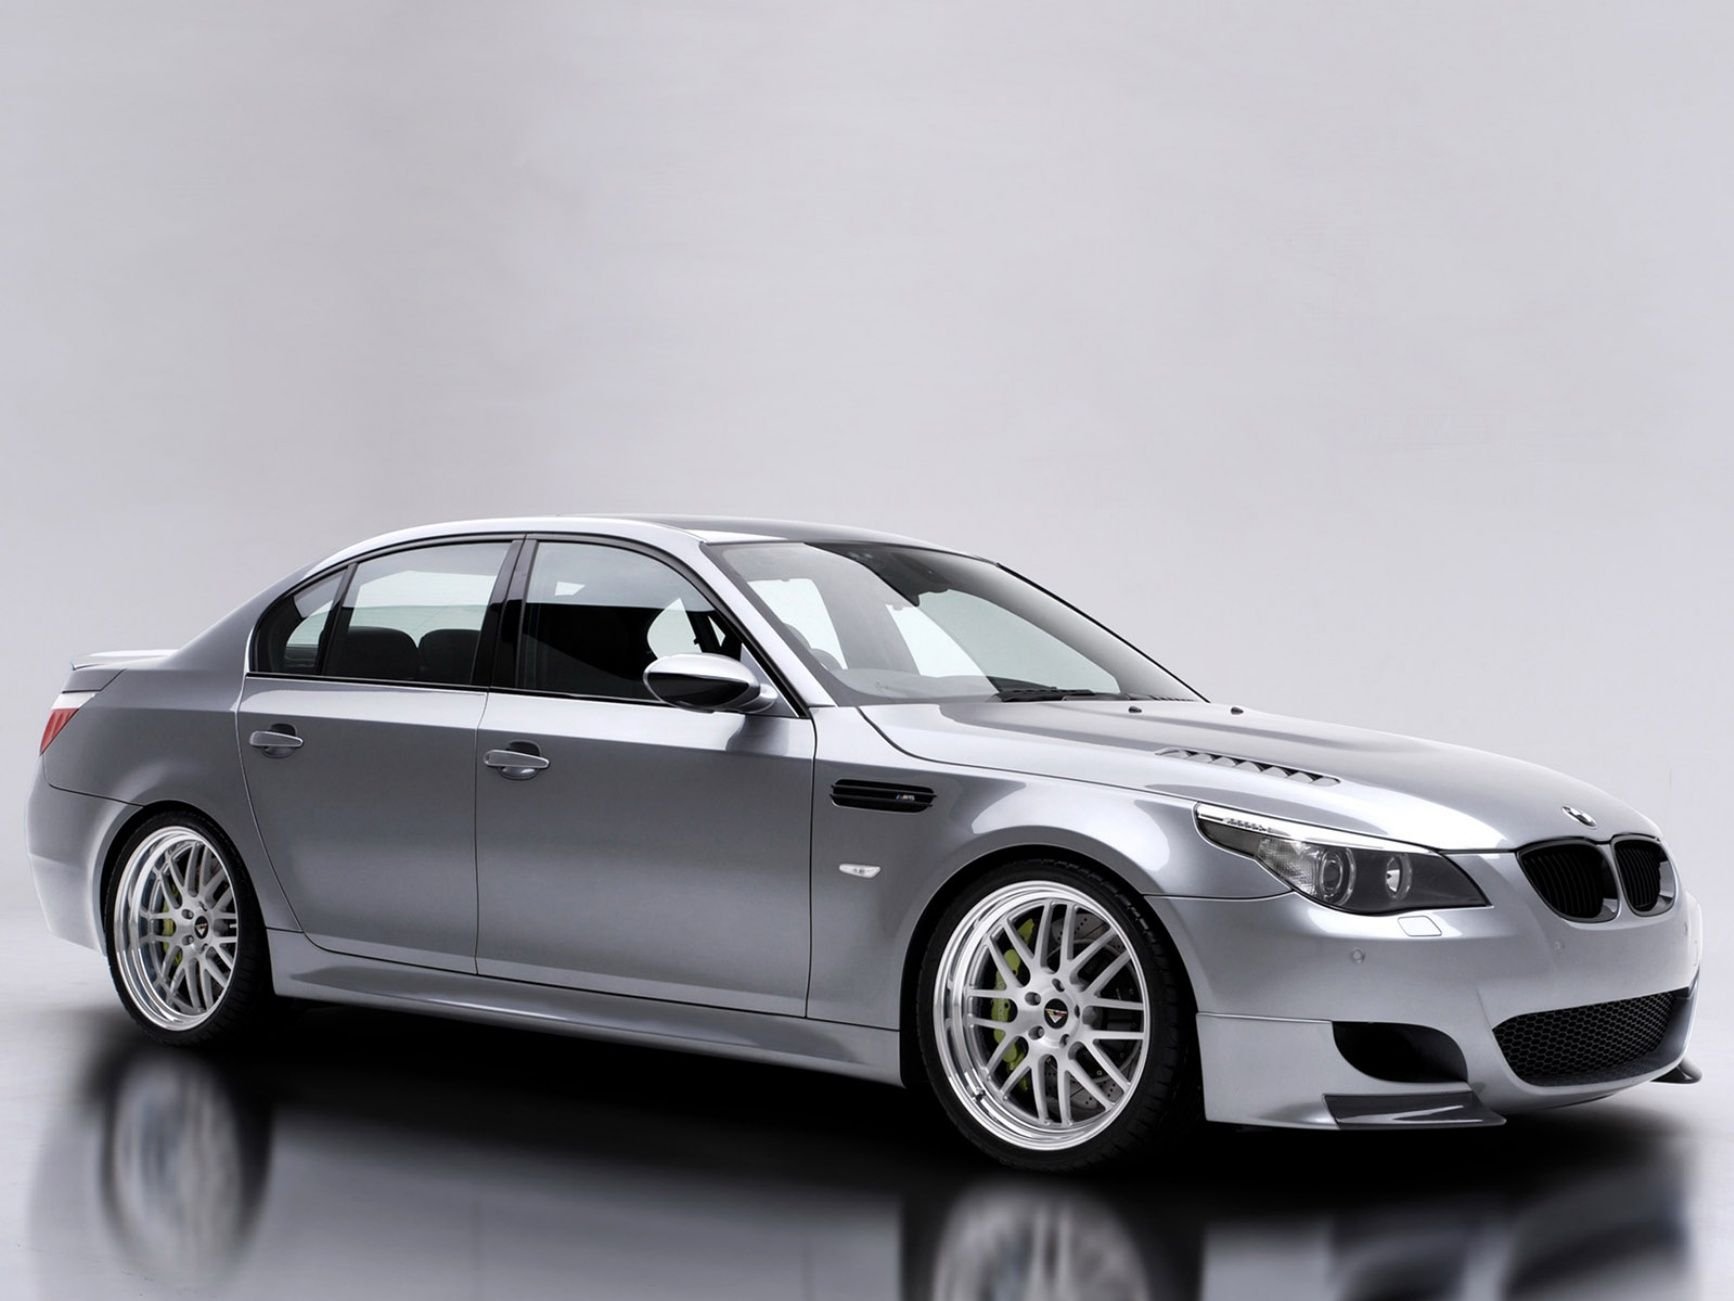 2006 BMW M5 The Implementation Of SMG Technology Car